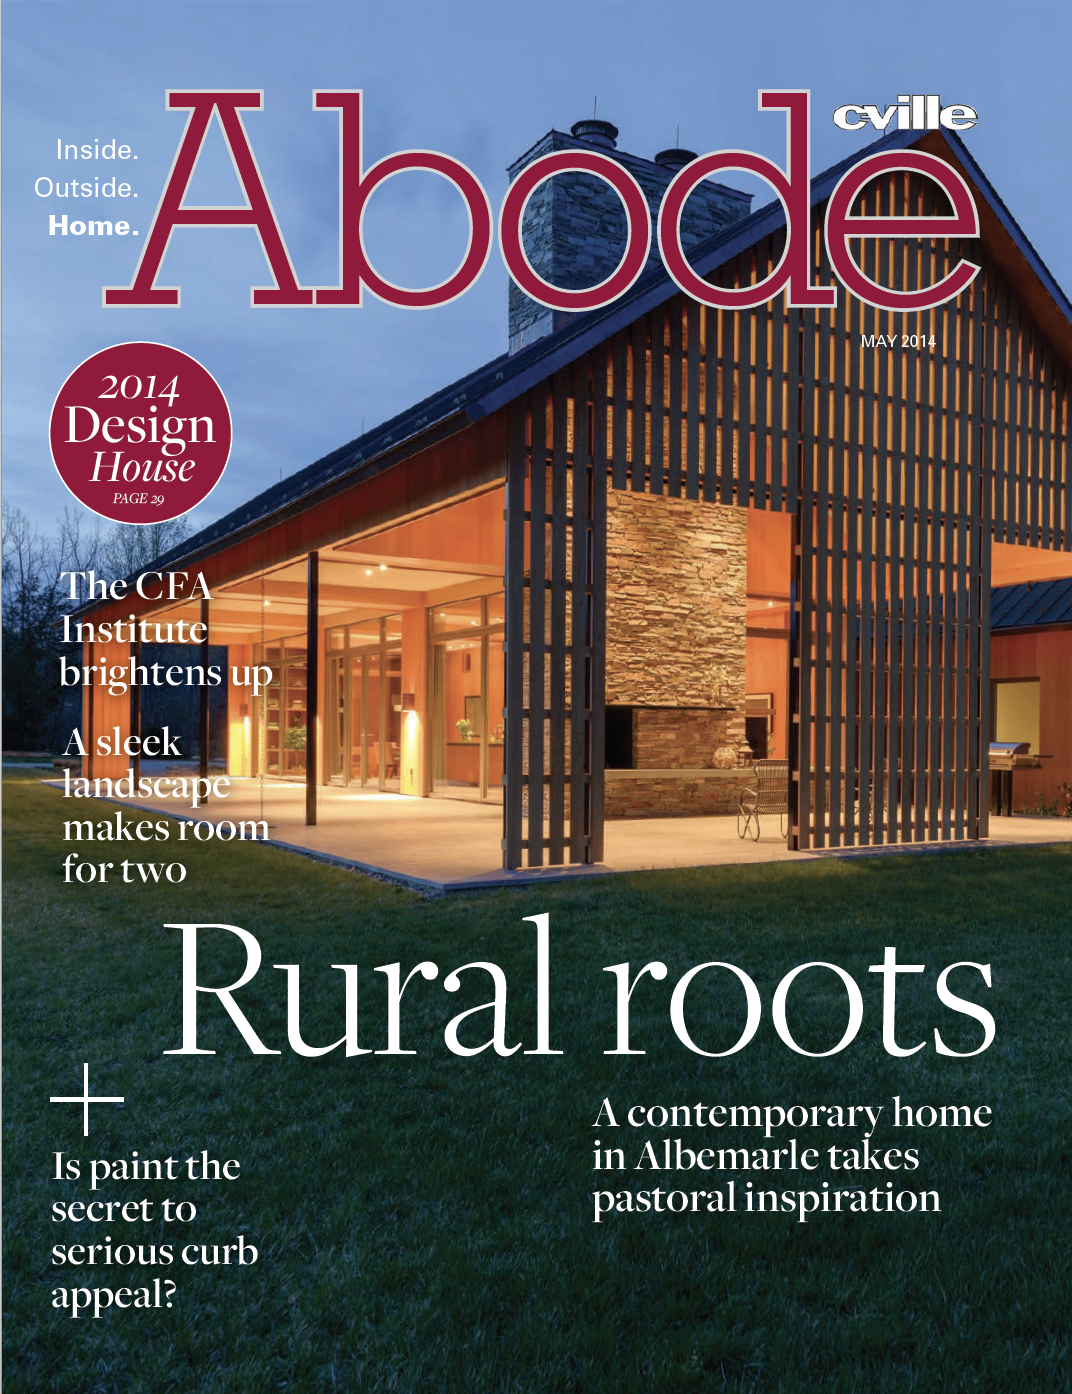 Our masonry work on this outdoor fireplace featured in Abode Magazine.